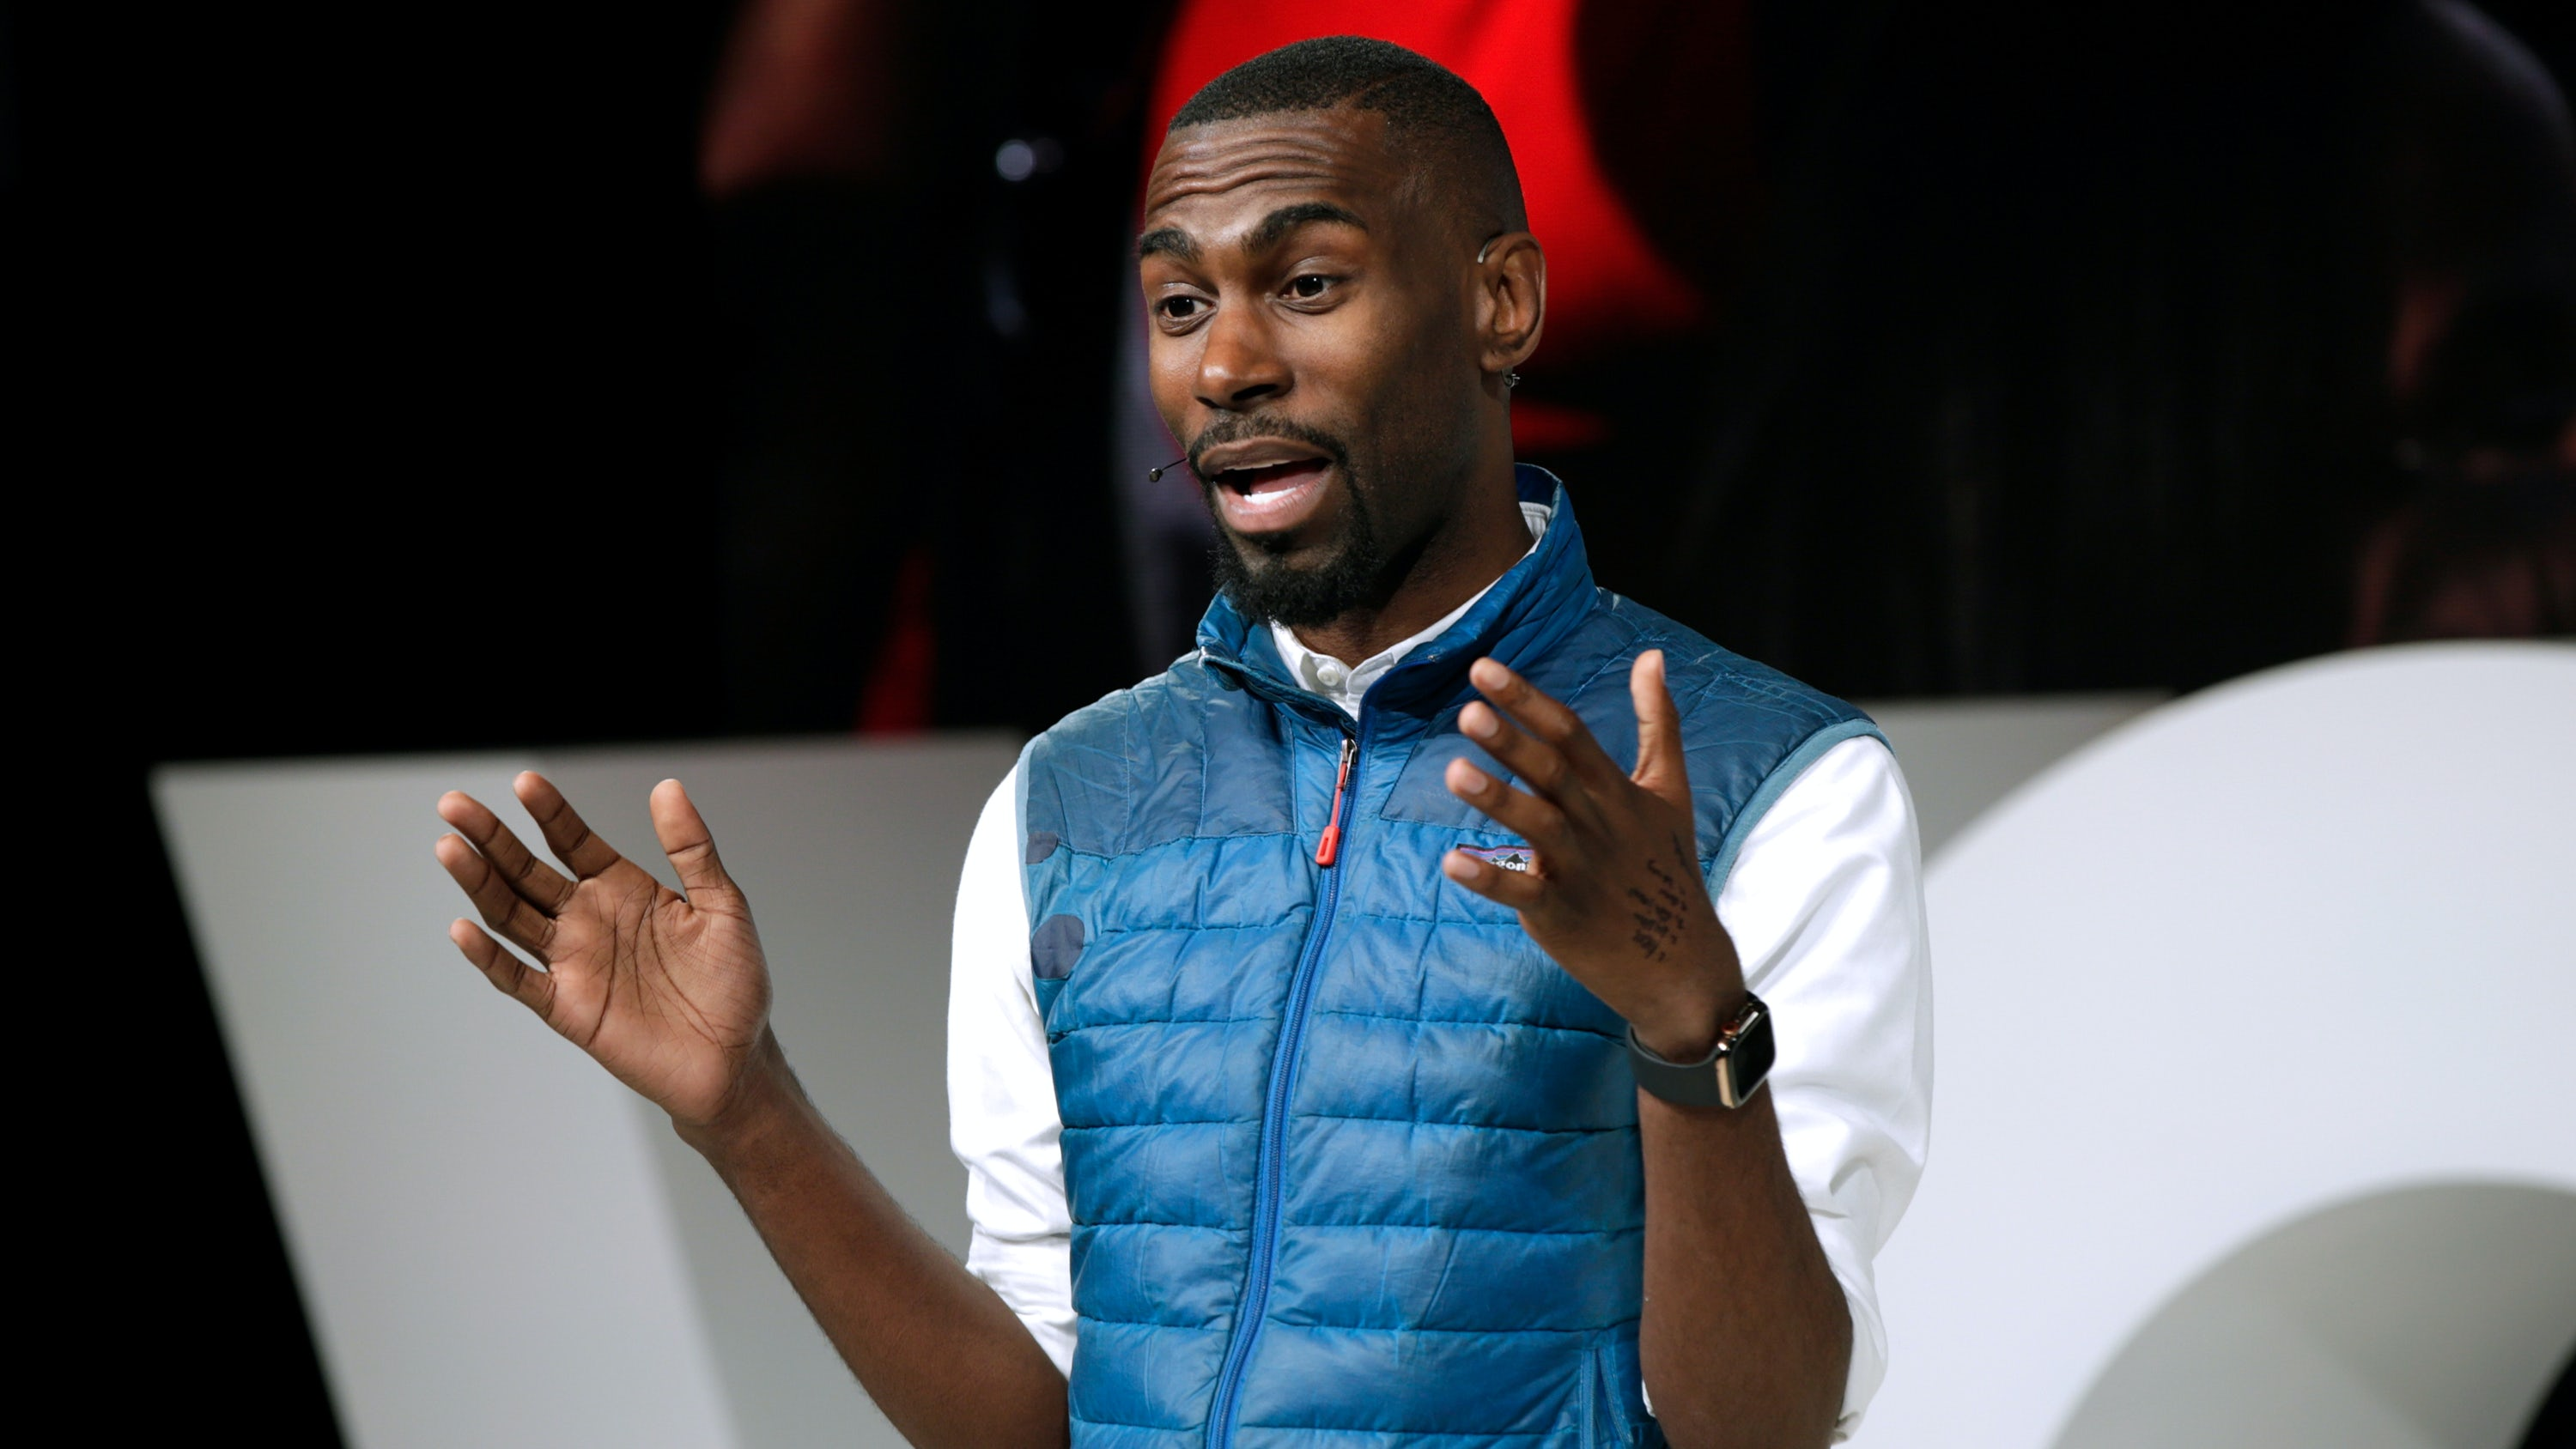 DeRay Mckesson | Source: Getty Images for The Business of Fashion